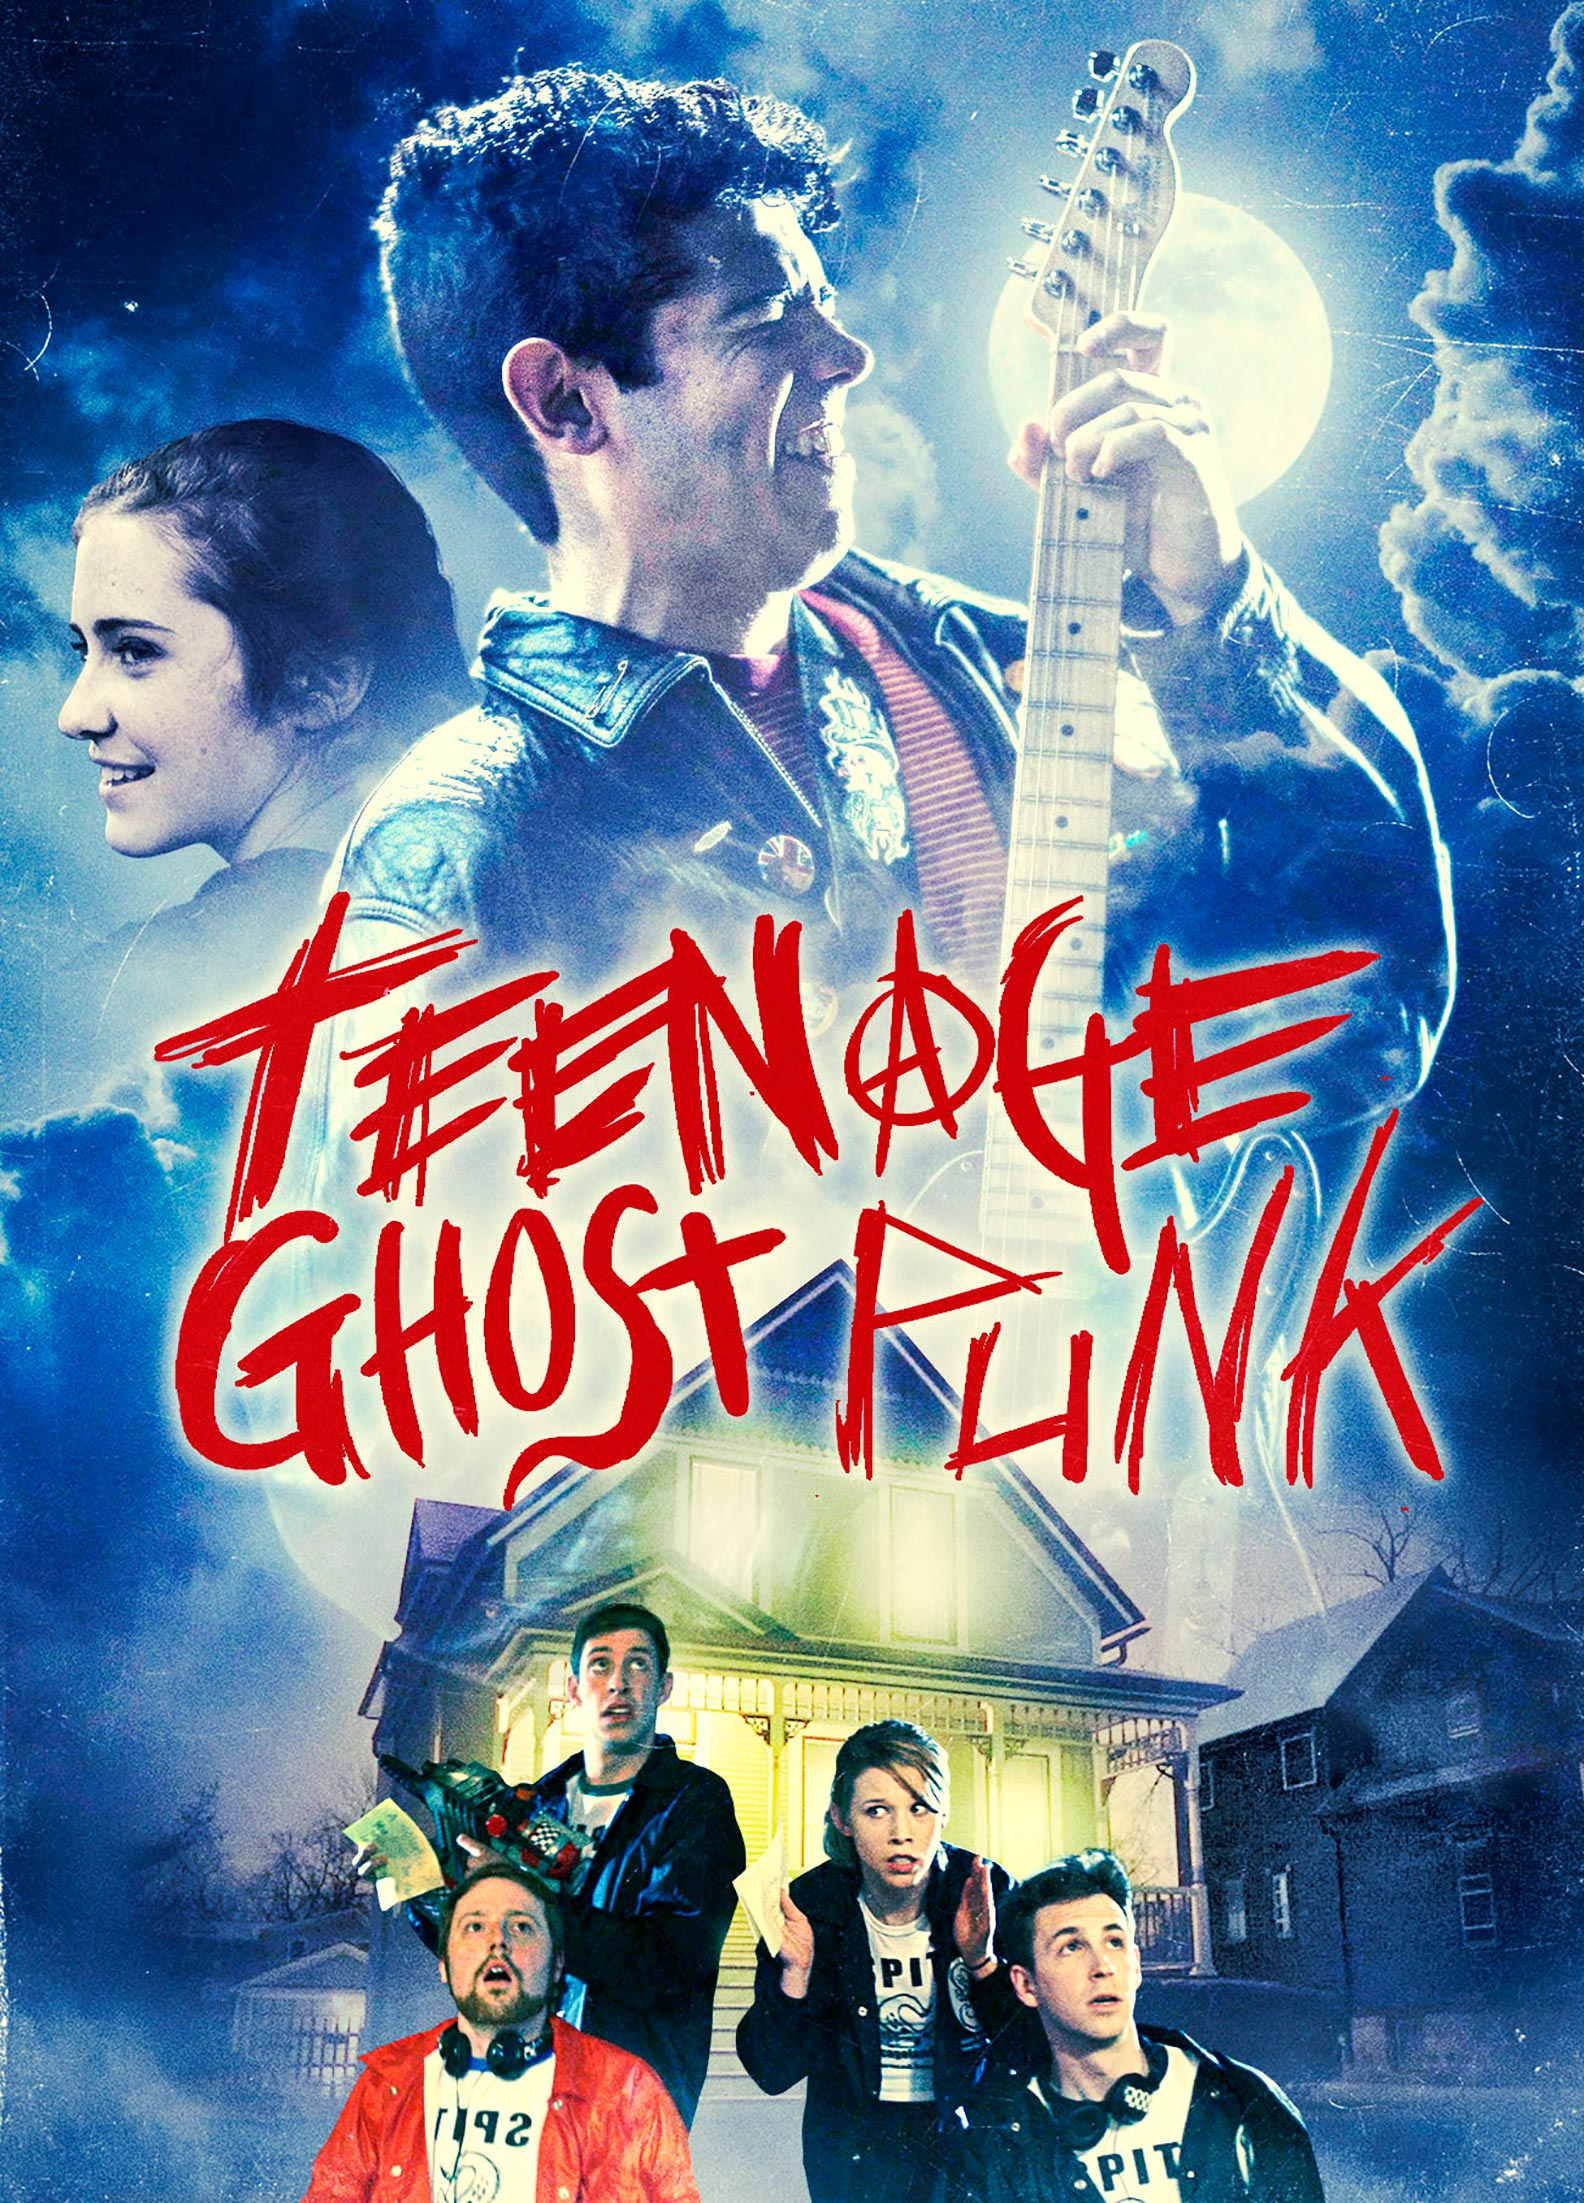 Teenage Ghost Punk Poster #1